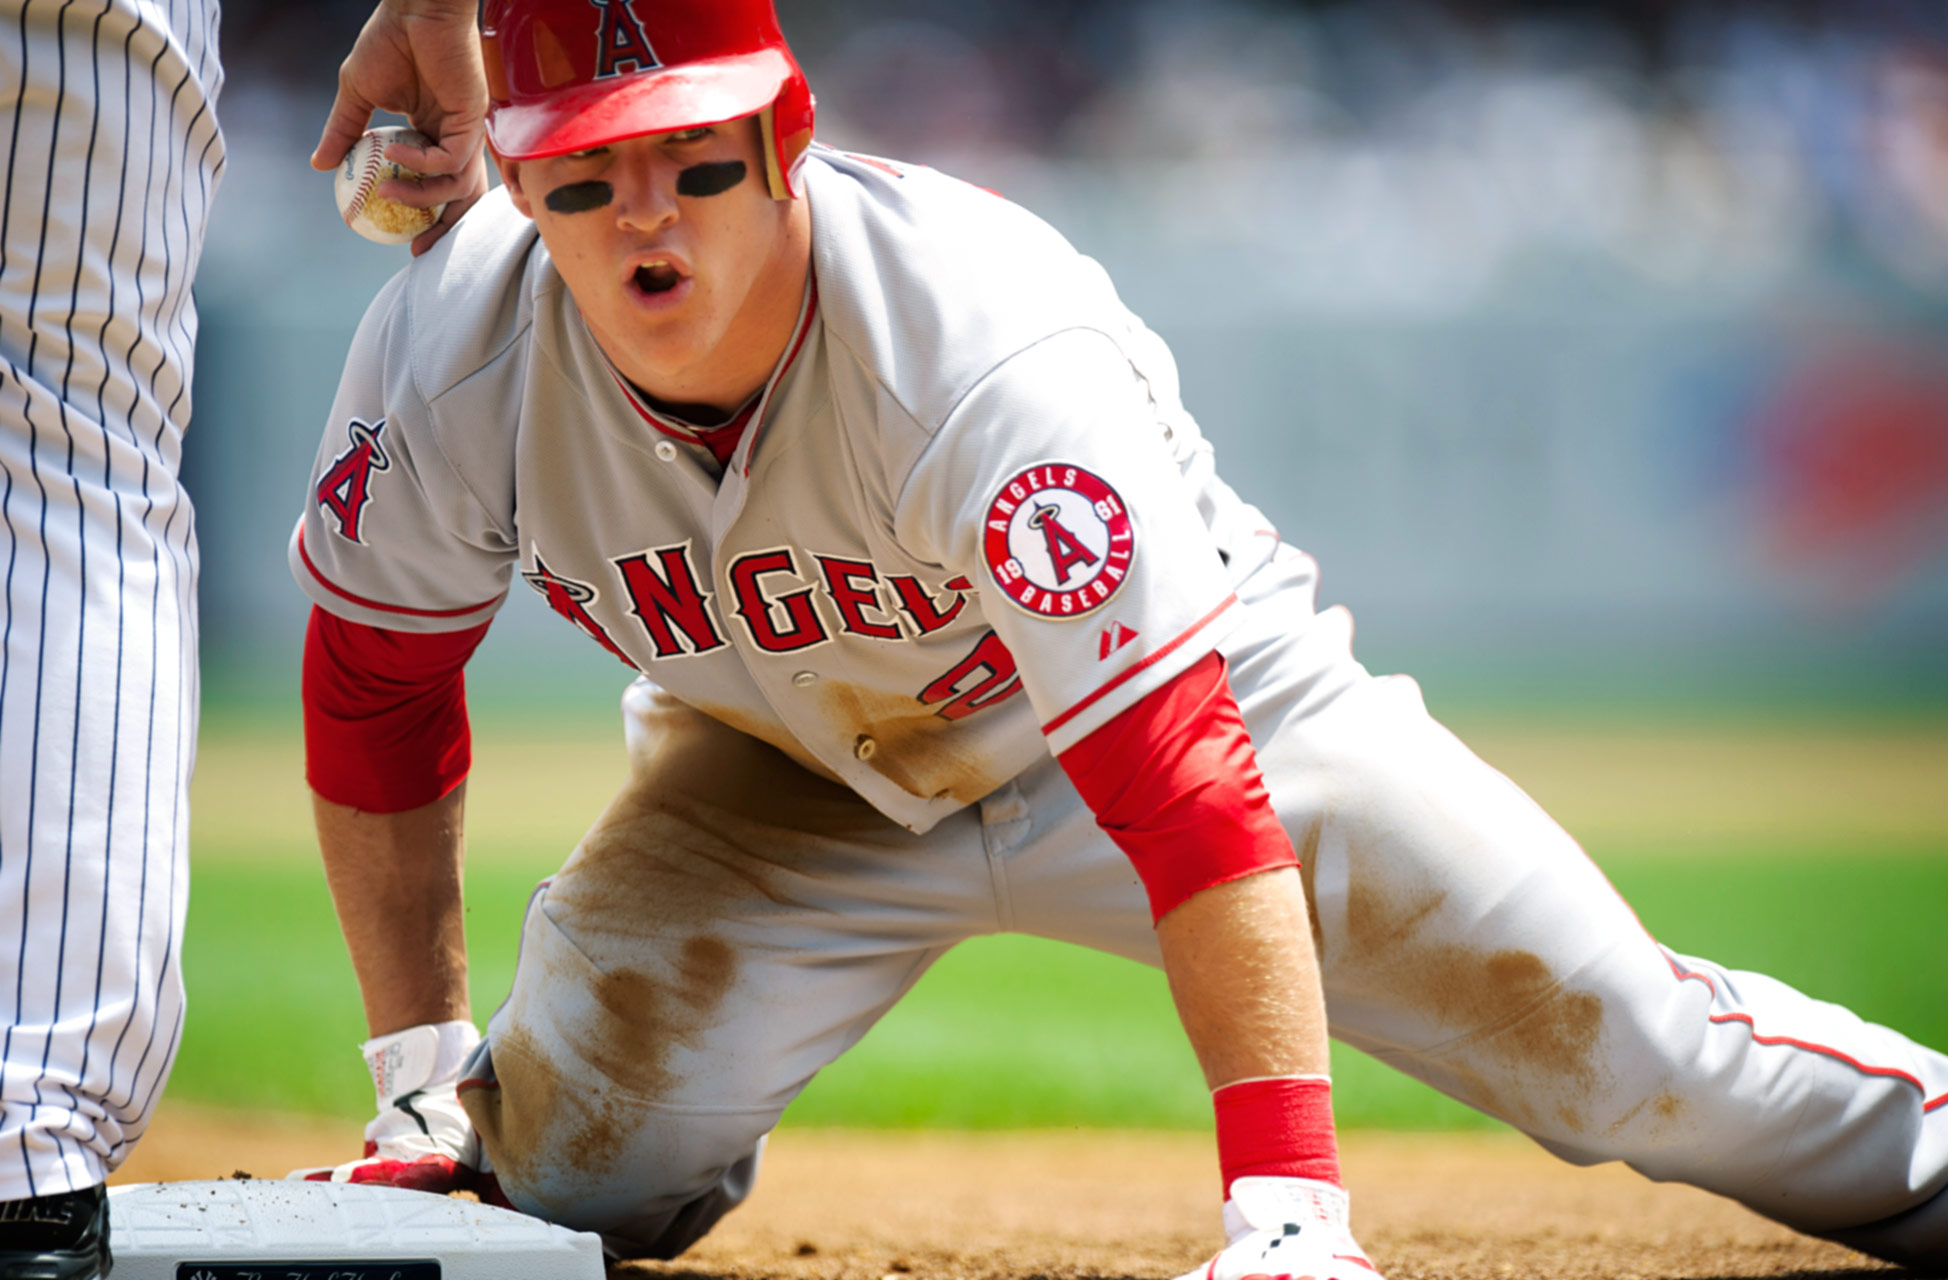 Mike trout cycle youtube downloader